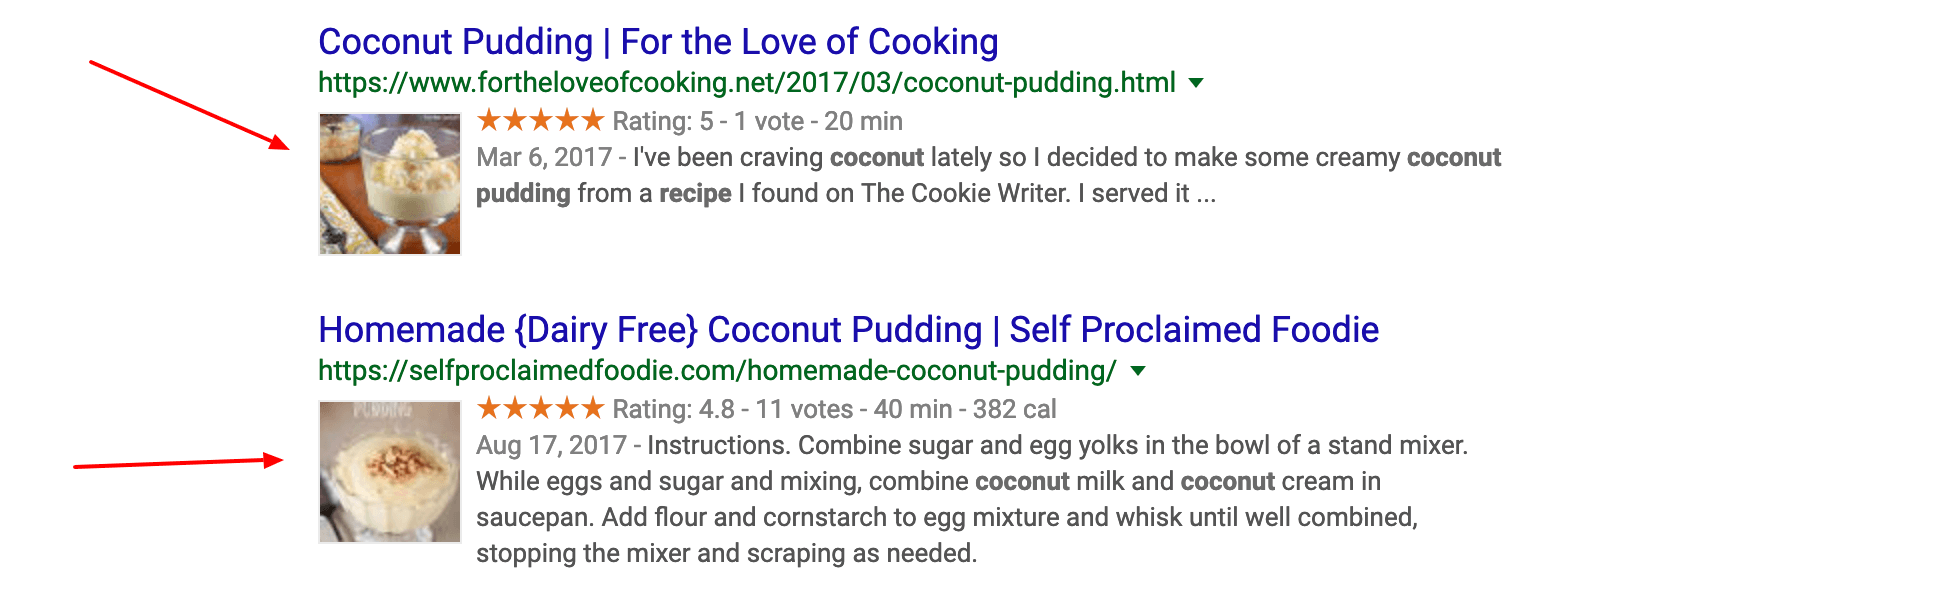 coconut-pudding-recipe-2-1 Image SEO Image optimization